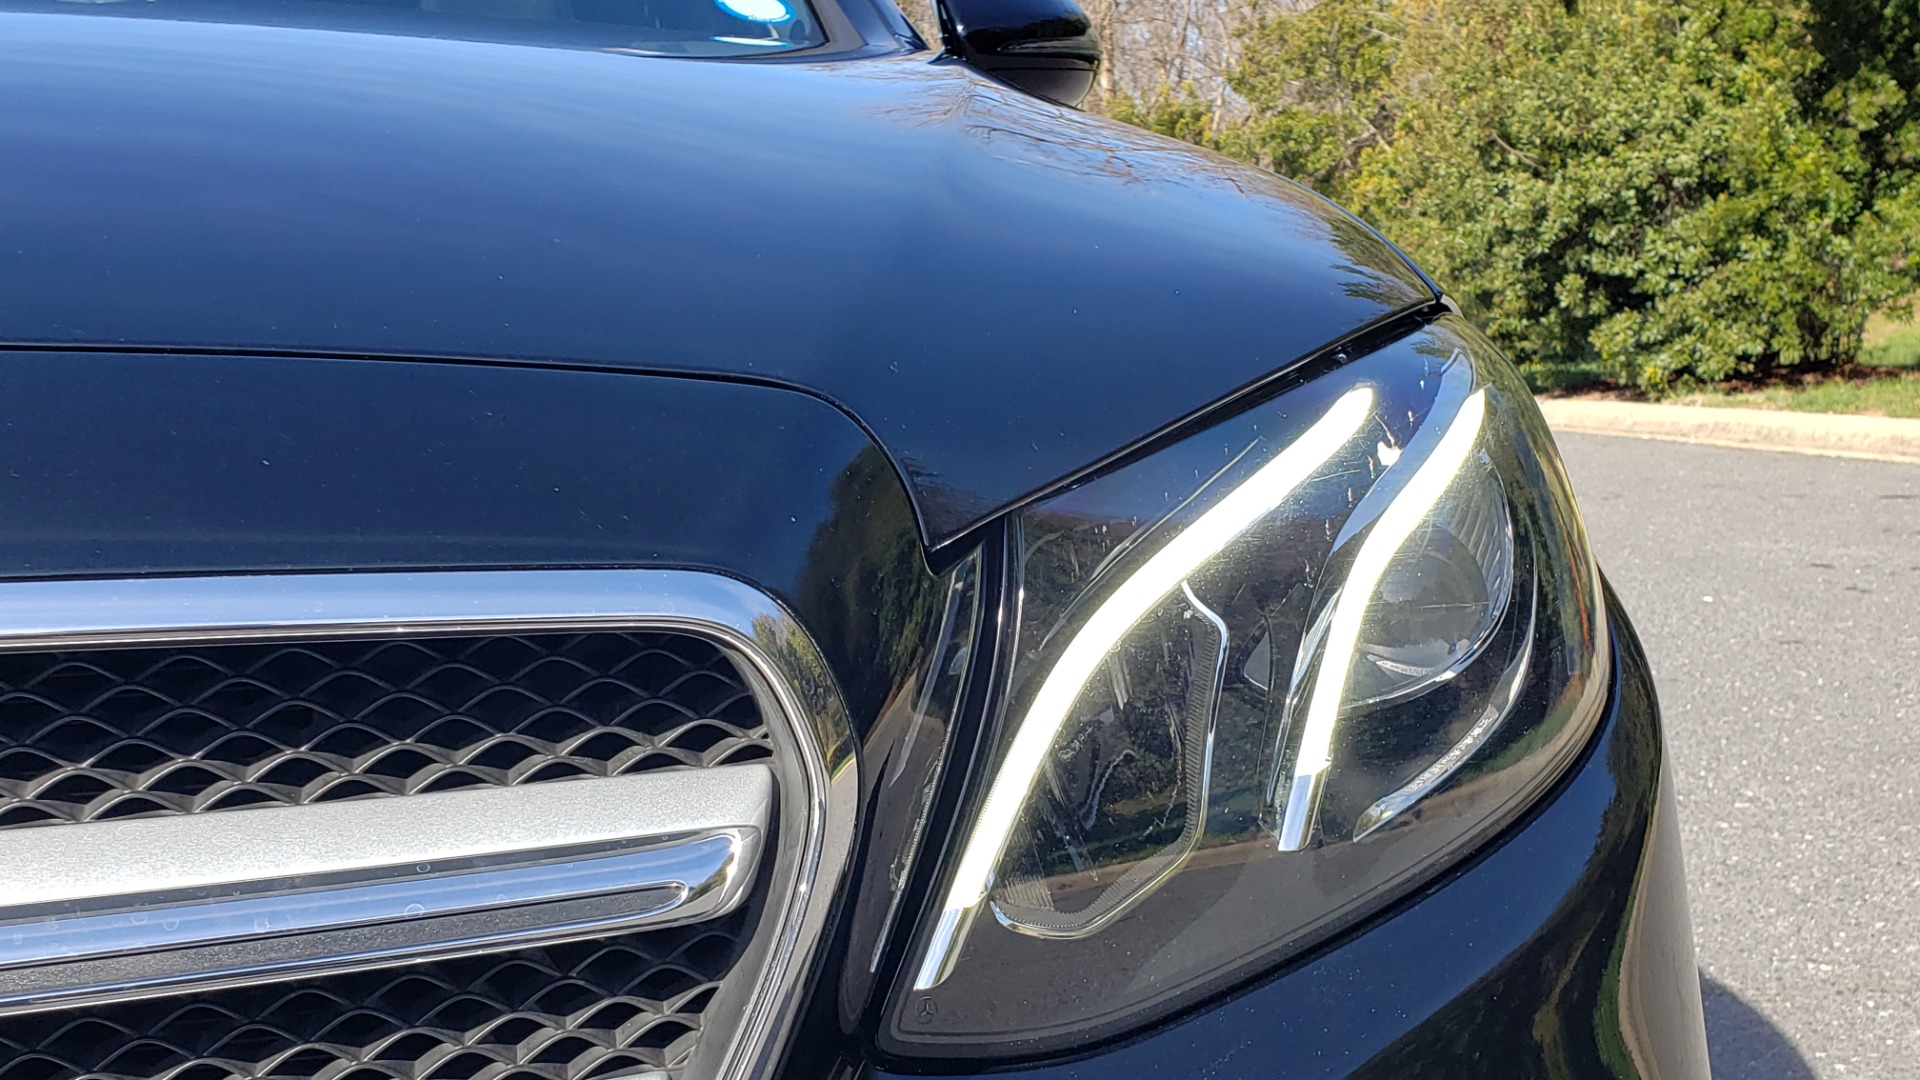 Used 2017 Mercedes-Benz E-CLASS E 300 PREMIUM / NAV / SUNROOF / BURMESTER / HTD STS / REARVIEW for sale $29,995 at Formula Imports in Charlotte NC 28227 23